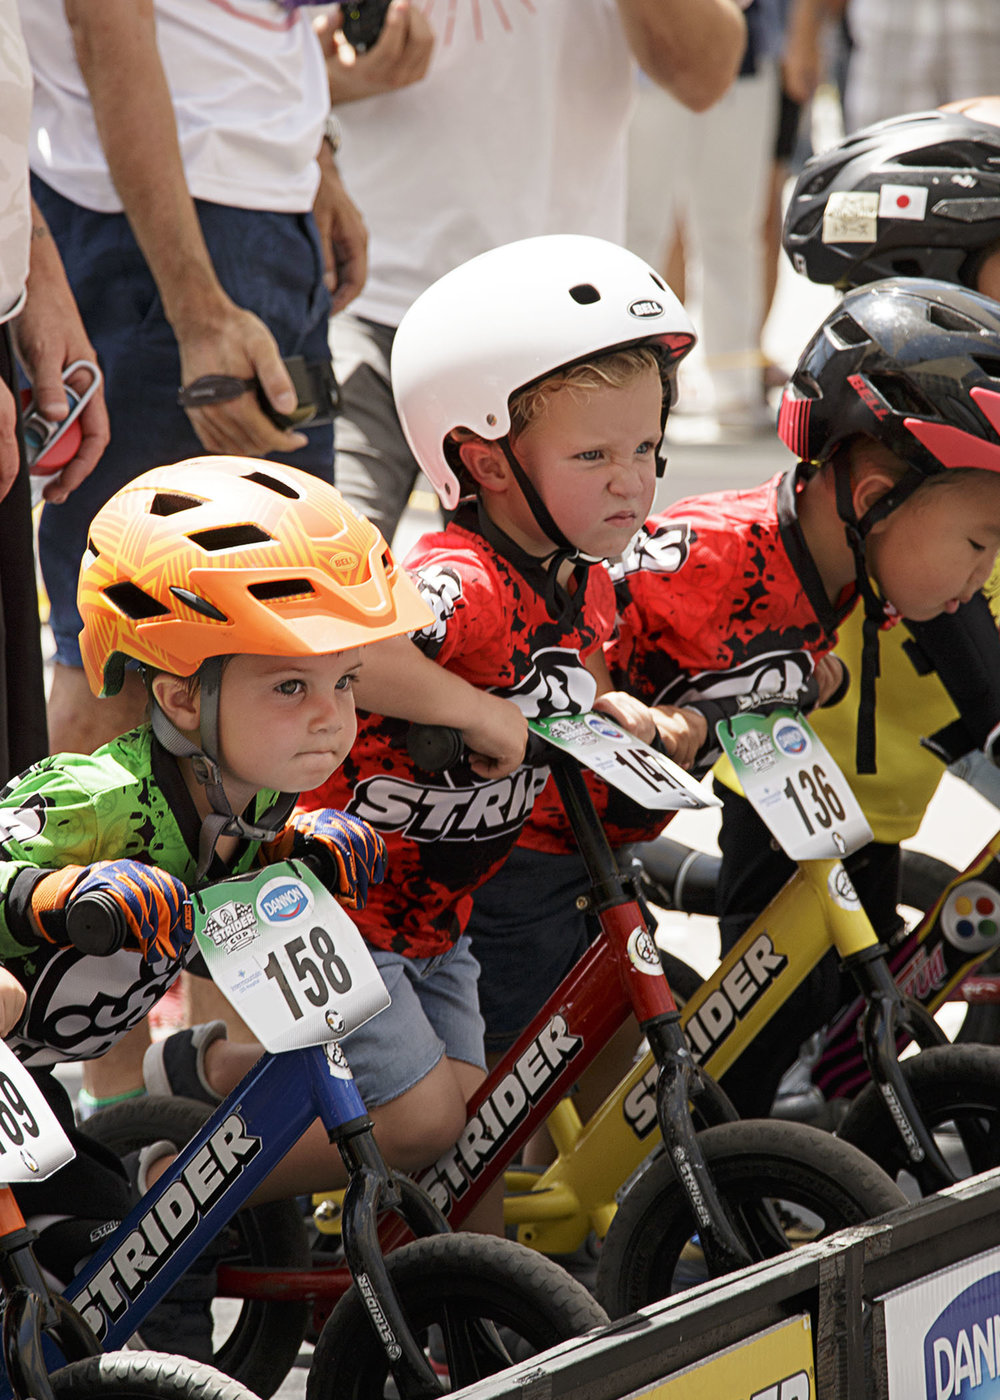 Boston's Strider bike race